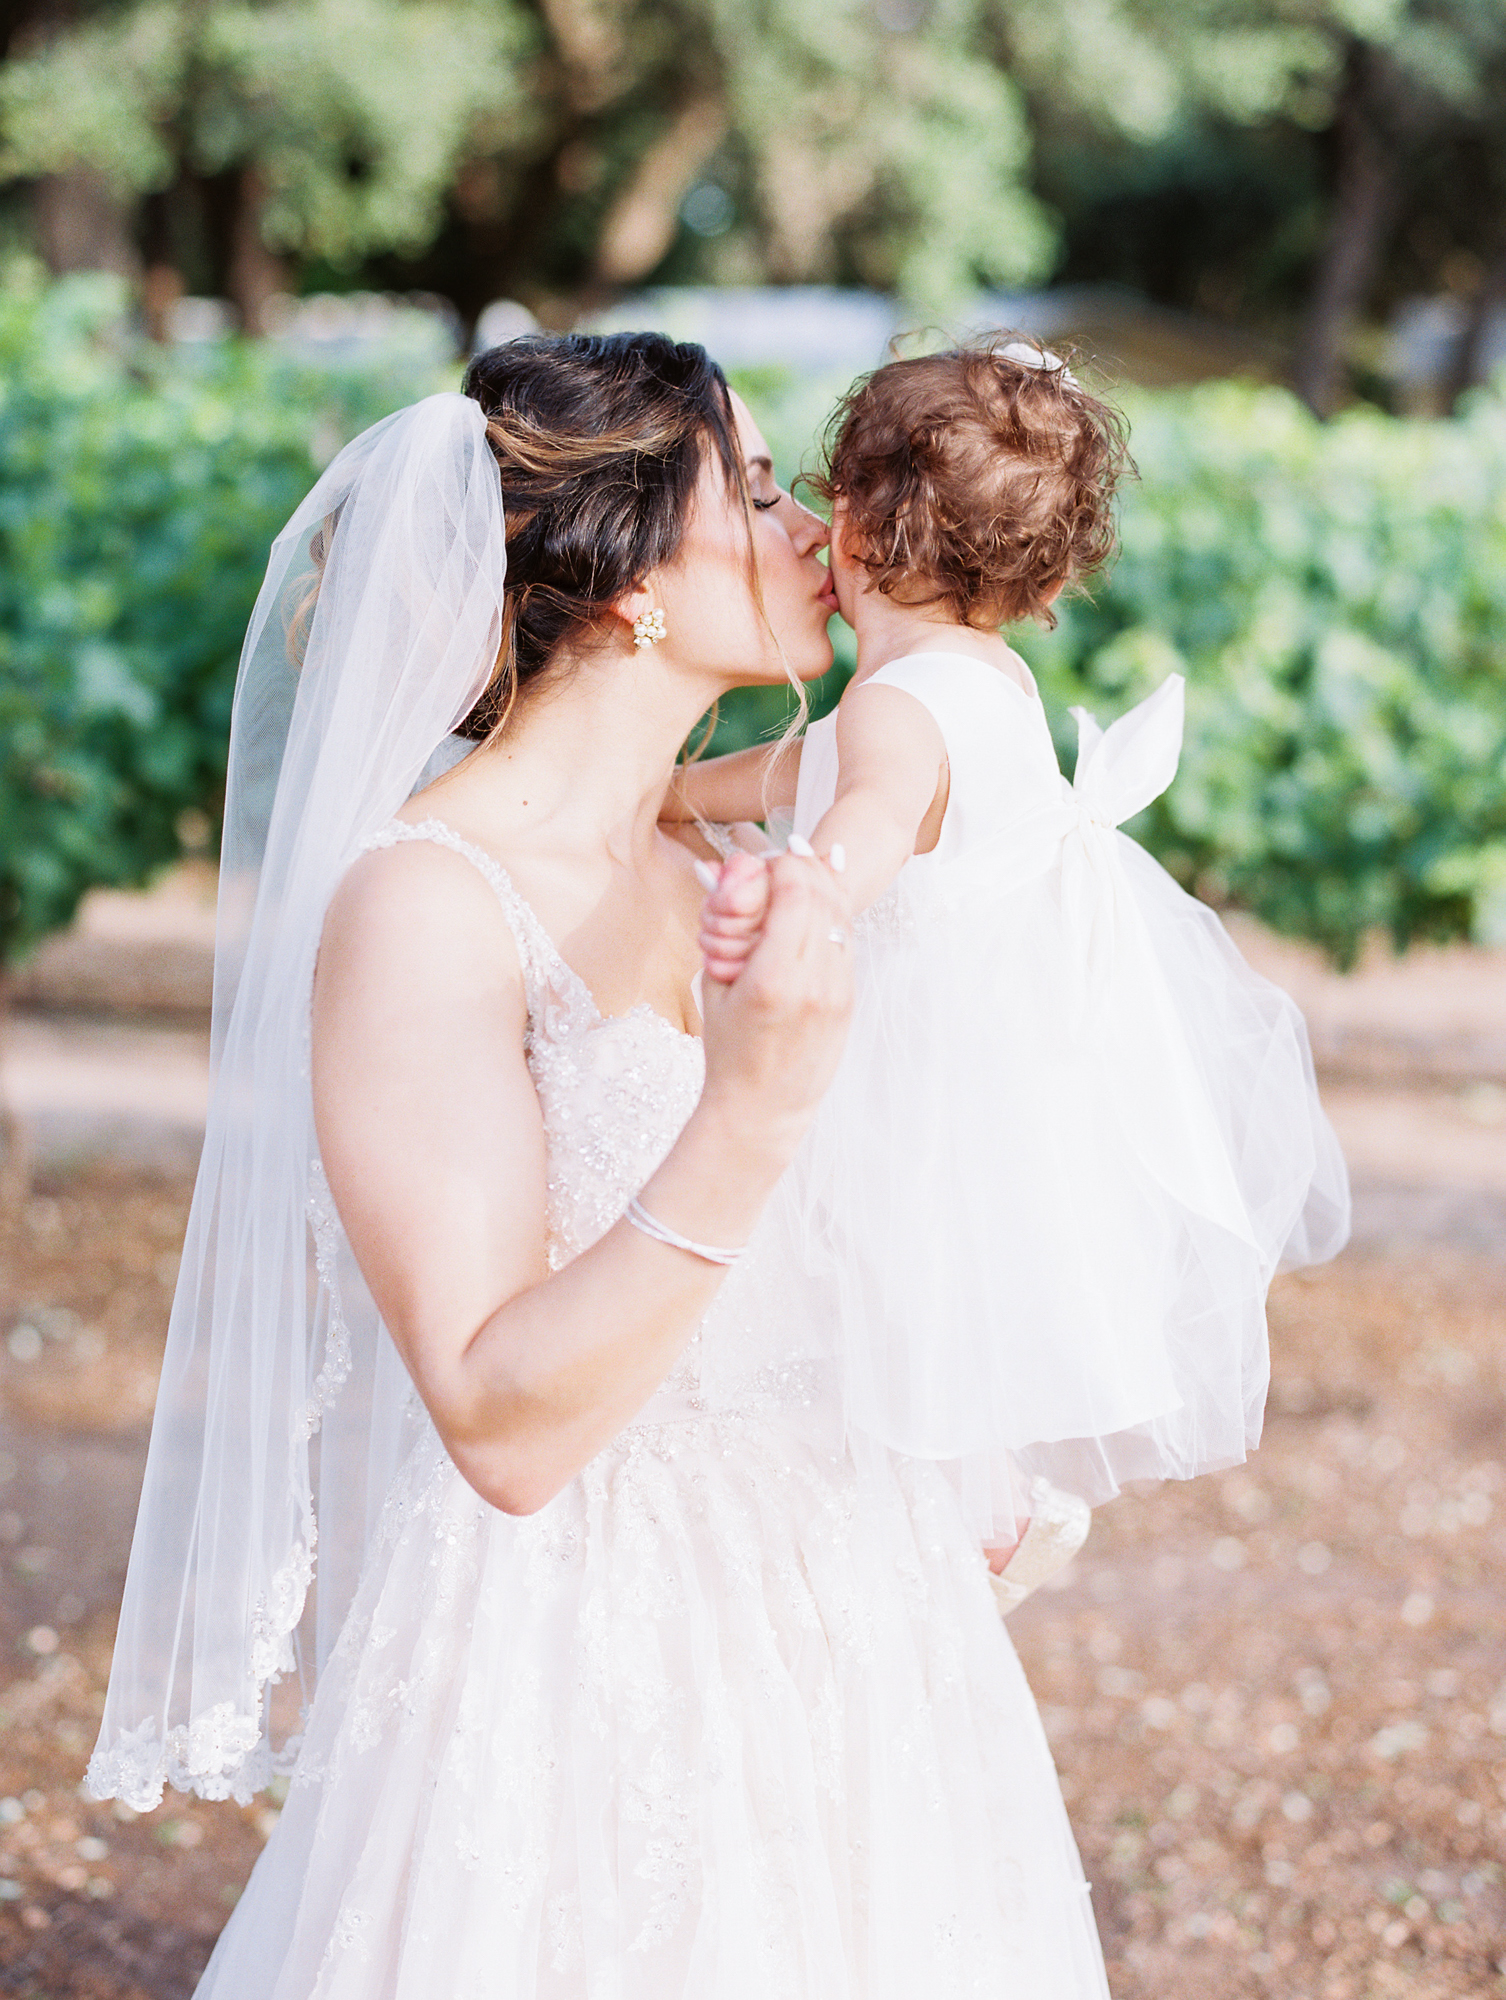 Elegant Spring Vineyard Wedding | Film Wedding Photographer | Austin Wedding Photographer | Bride and Flower Girl | Britni Dean Photography // britnidean.com